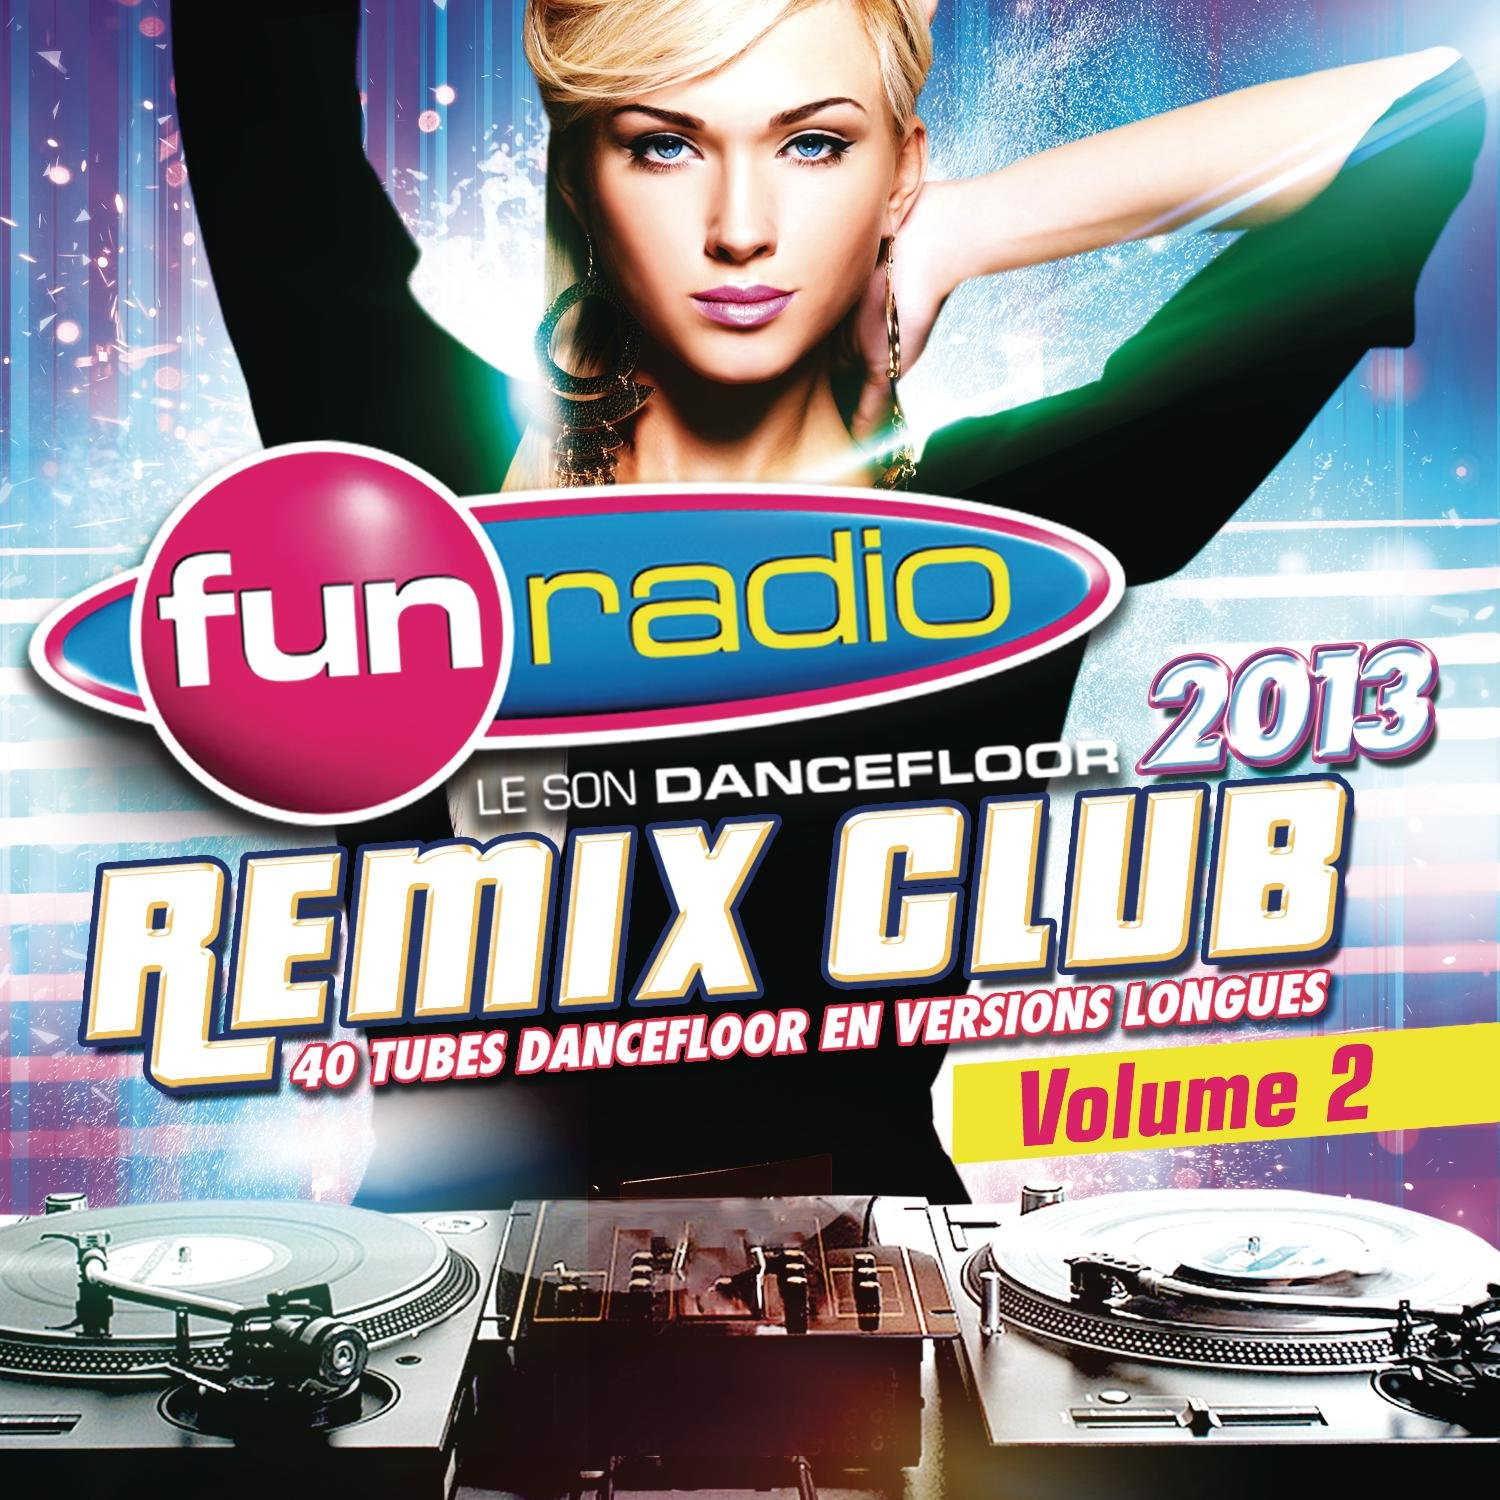 Fun Radio - Remix Club 2013 Vol. 2